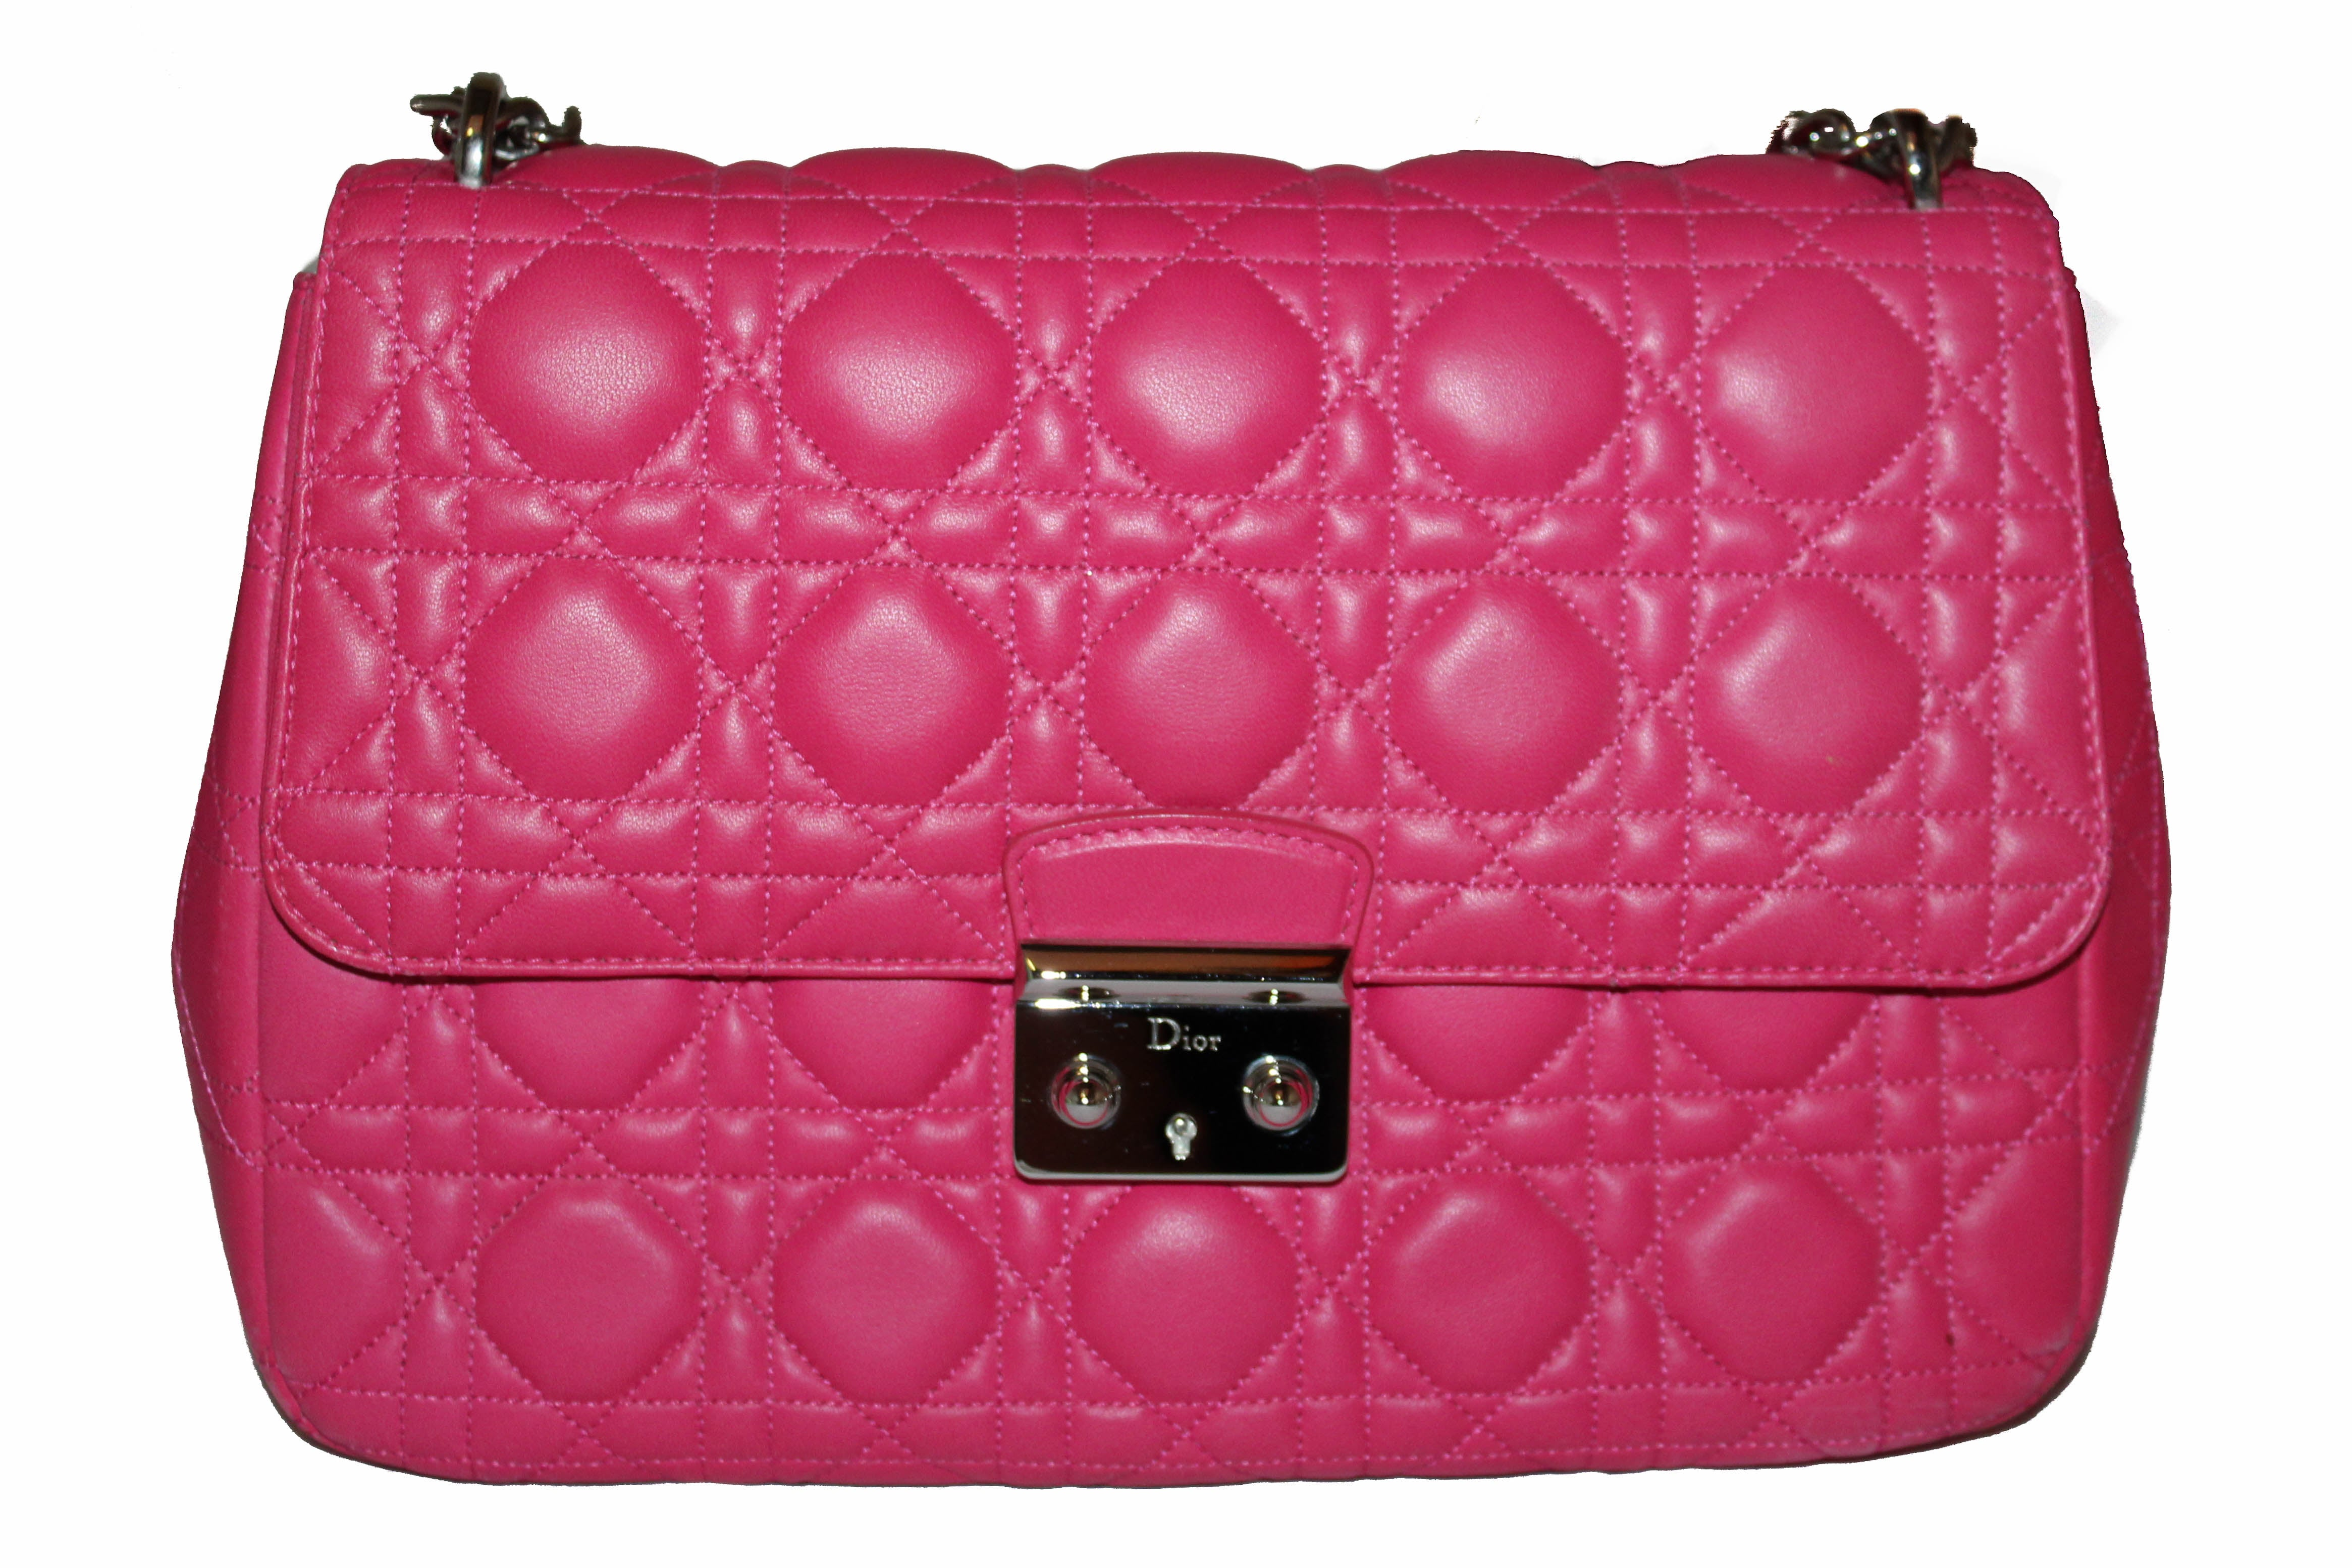 Authentic Christian Dior Fuchsia Lambskin Cannage Large Miss Dior Flap Shoulder Bag